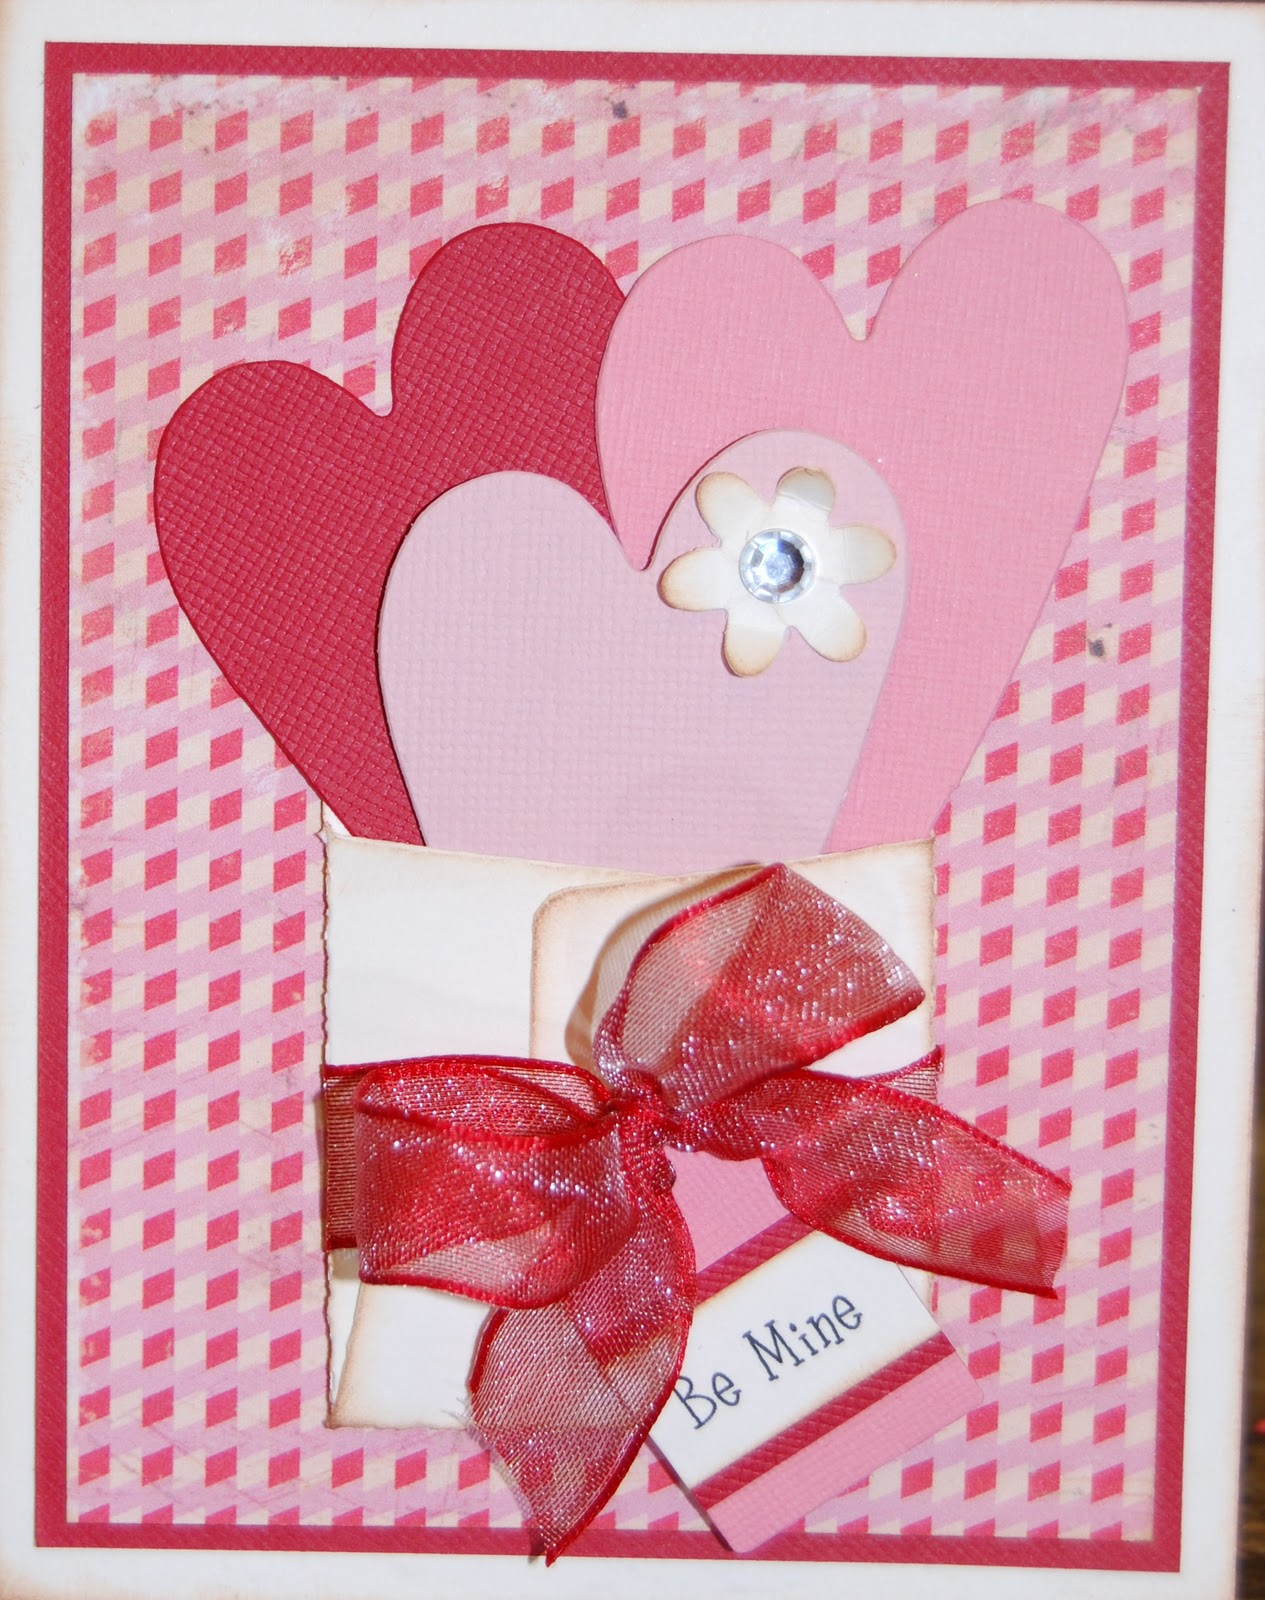 January scrapbook ideas - Valentine S Day Is Coming Soon